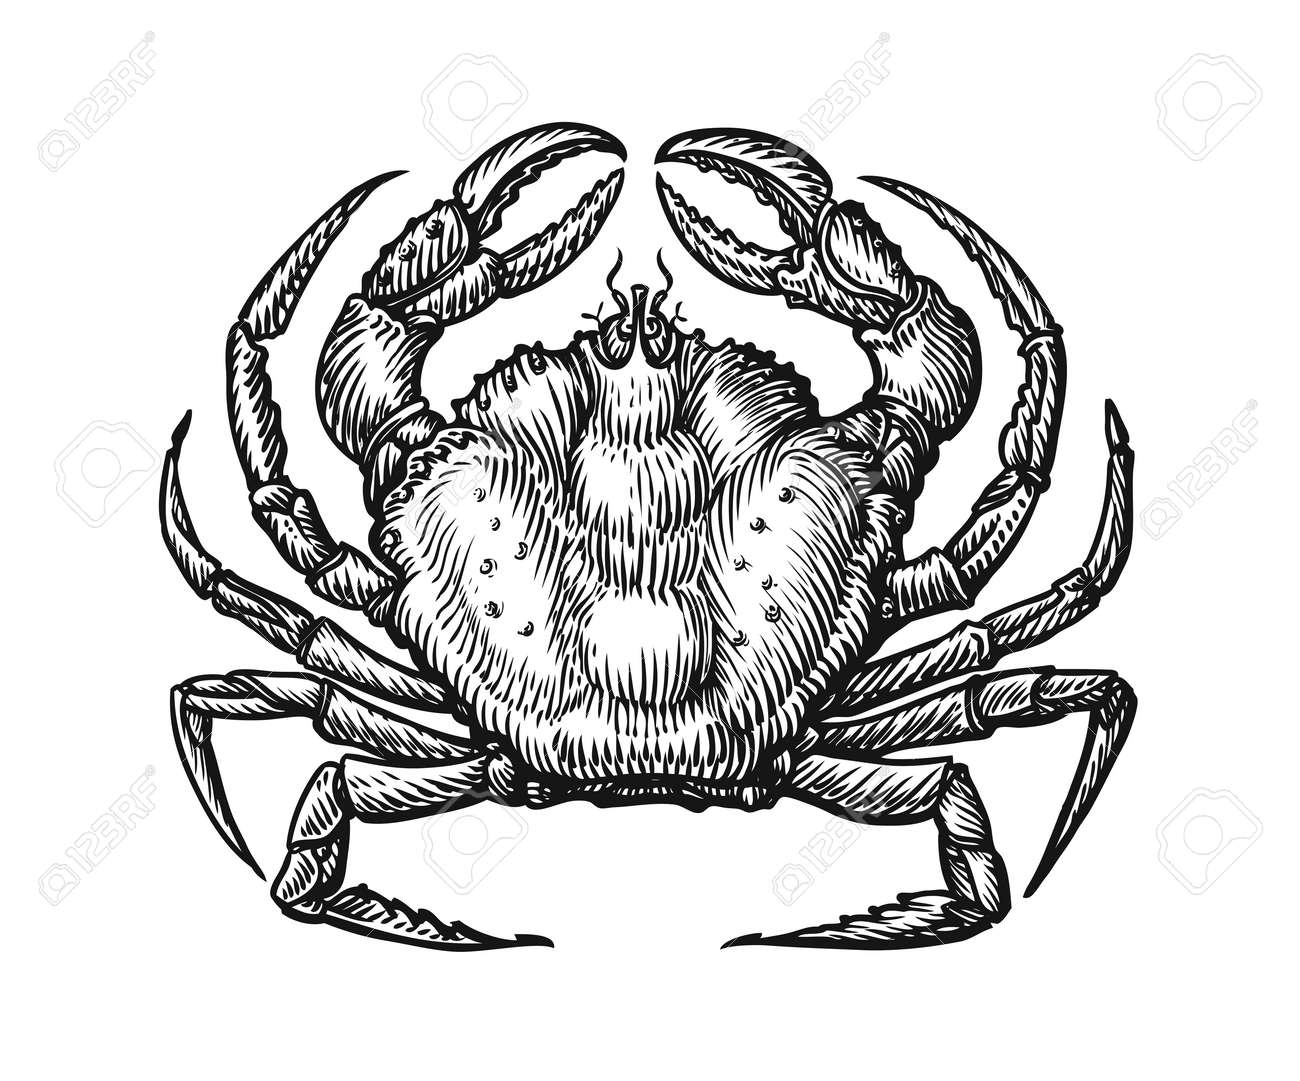 Crab with claws sketch illustration in vintage engraving style. Seafood hand drawn vector - 165666713